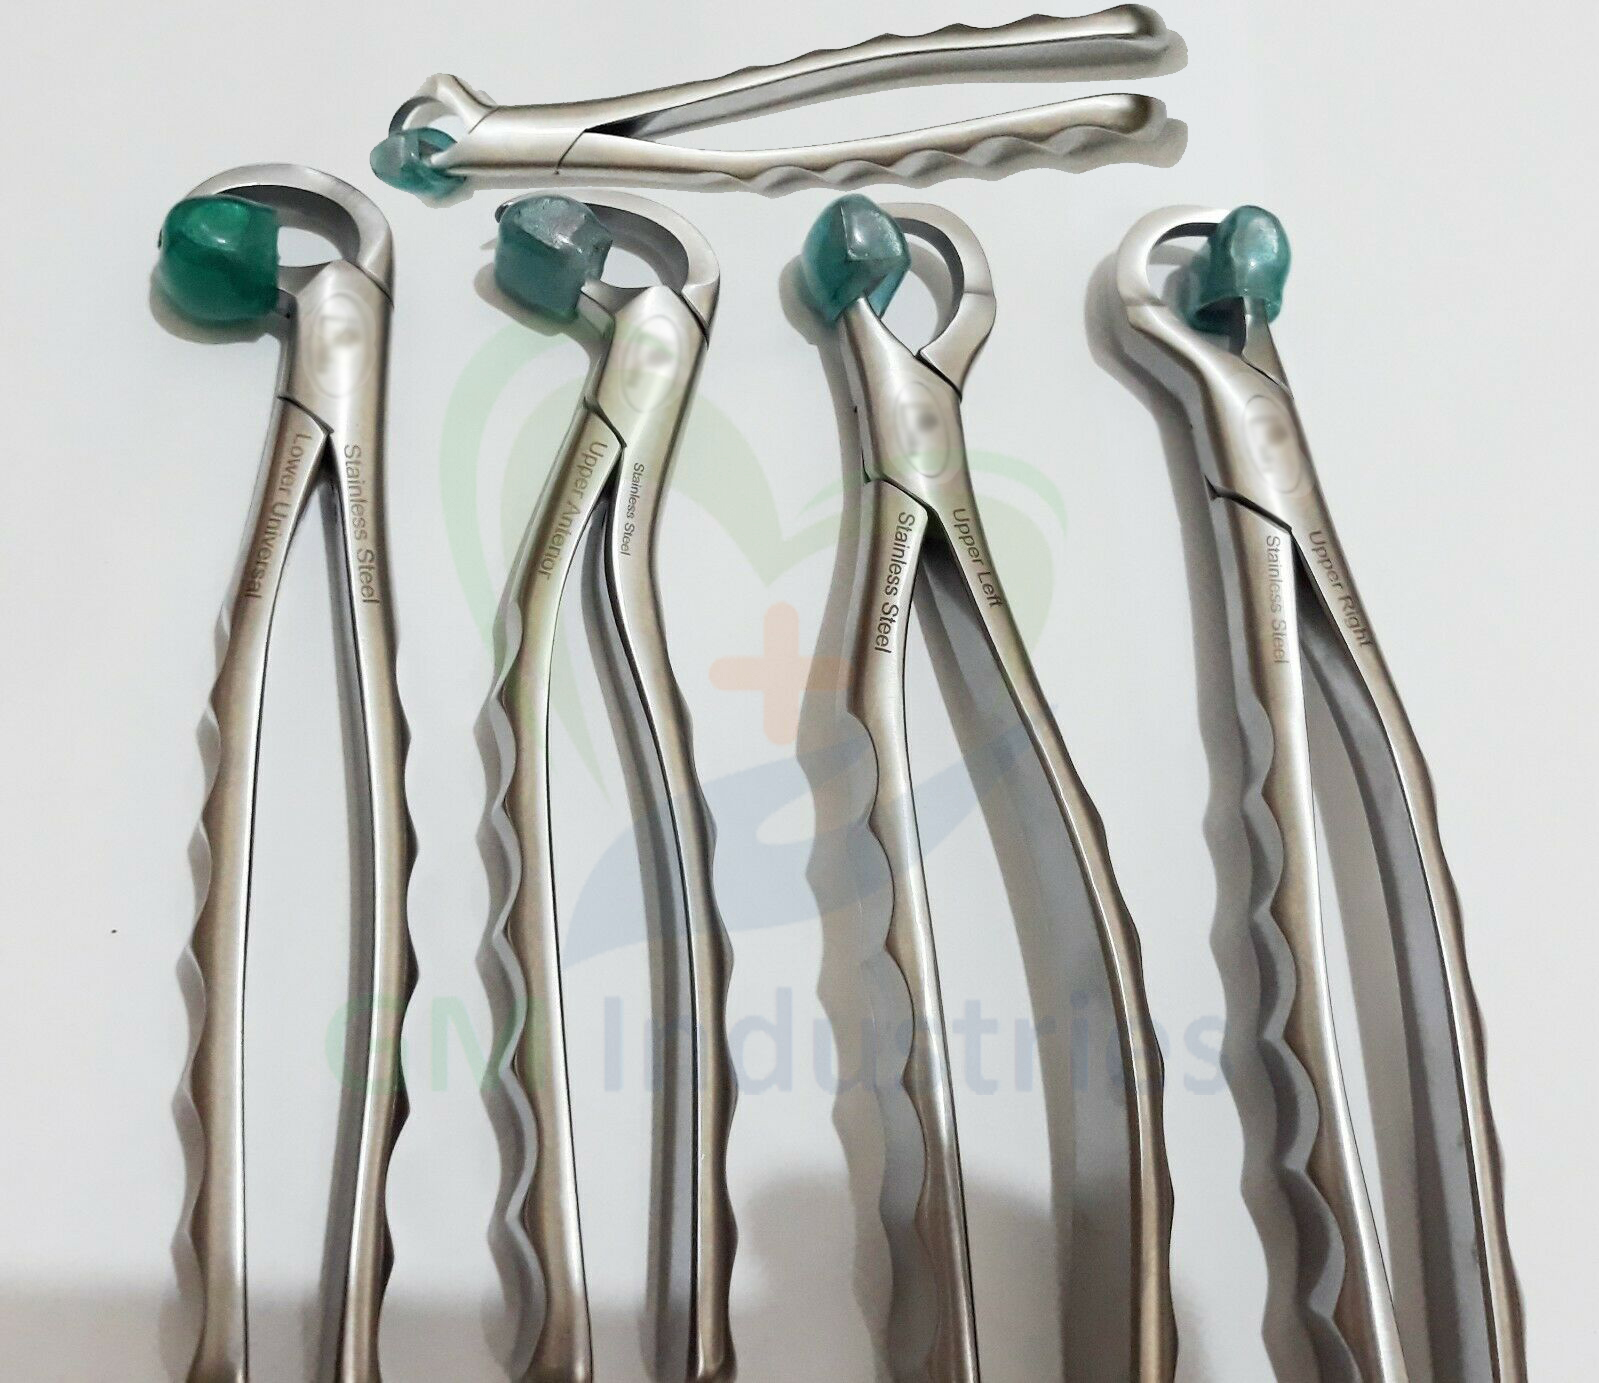 Gmi Dental Extraction Forceps No 1 Root Splinter Forceps Instruments Dentist Tools Buy Dental Extraction Forceps Forceps Aesculap Gmbh Martin Instrumente Product On Alibaba Com